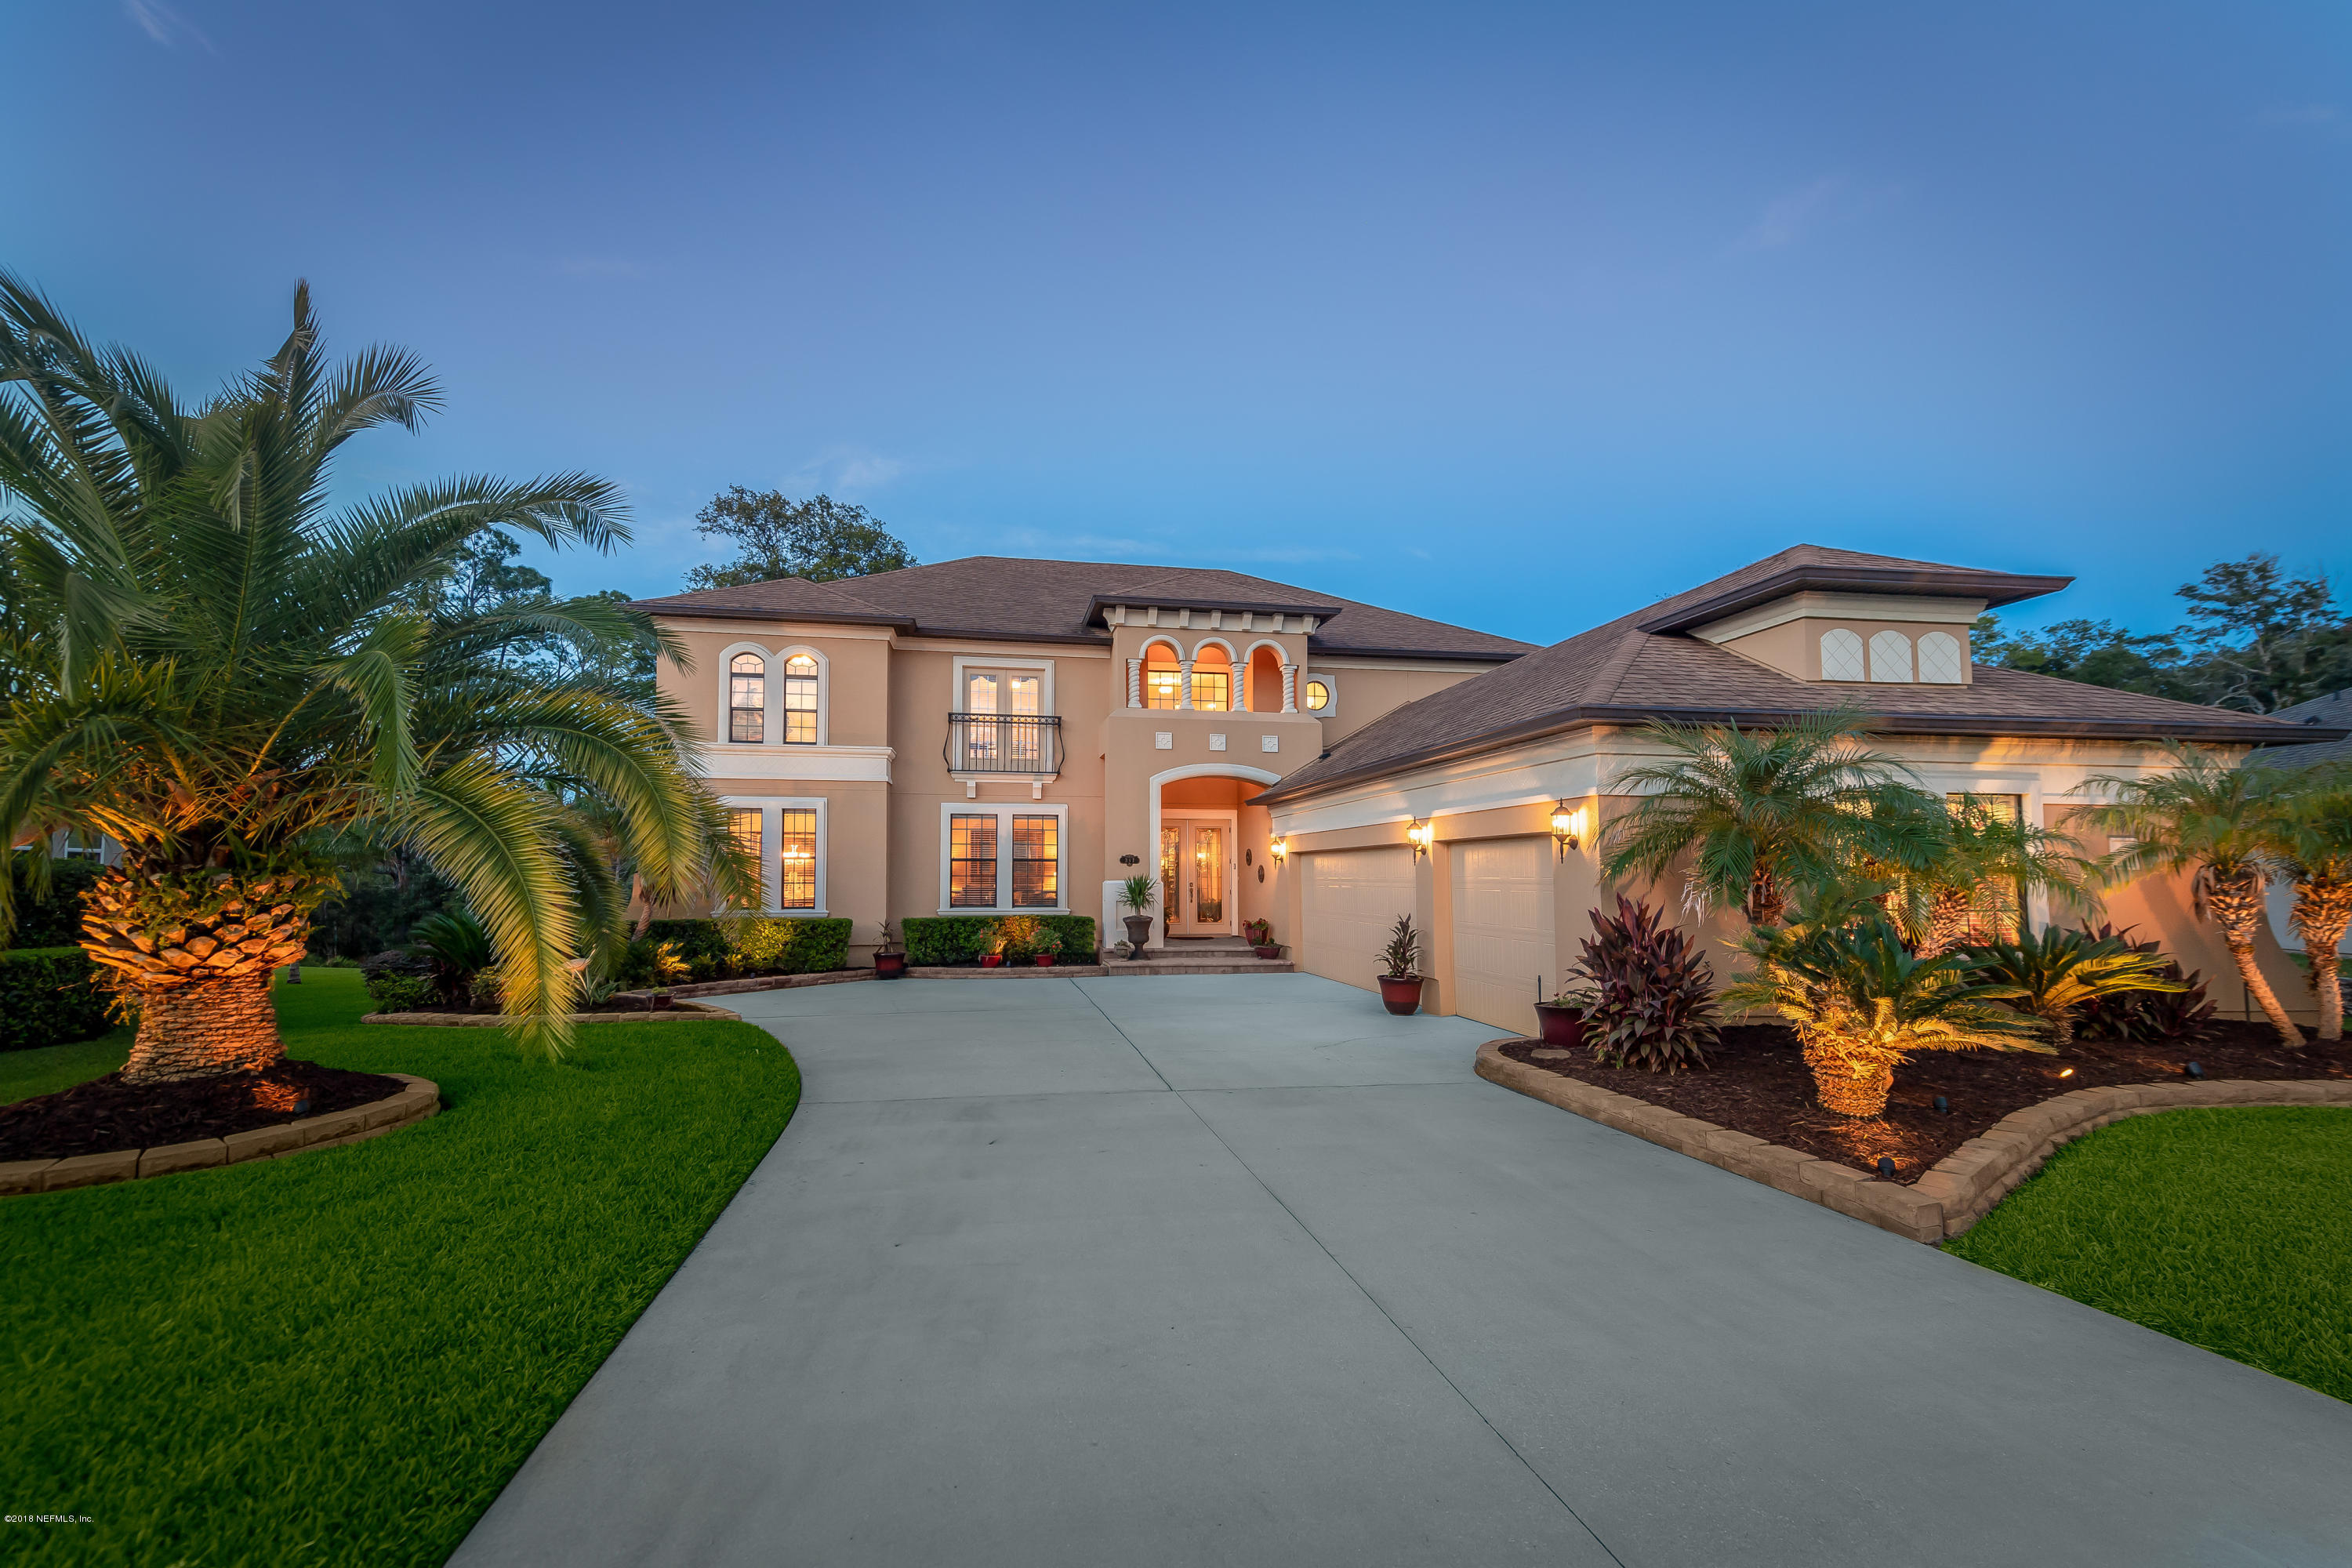 387 GIANNA, ST AUGUSTINE, FLORIDA 32086, 6 Bedrooms Bedrooms, ,4 BathroomsBathrooms,Residential - single family,For sale,GIANNA,957865